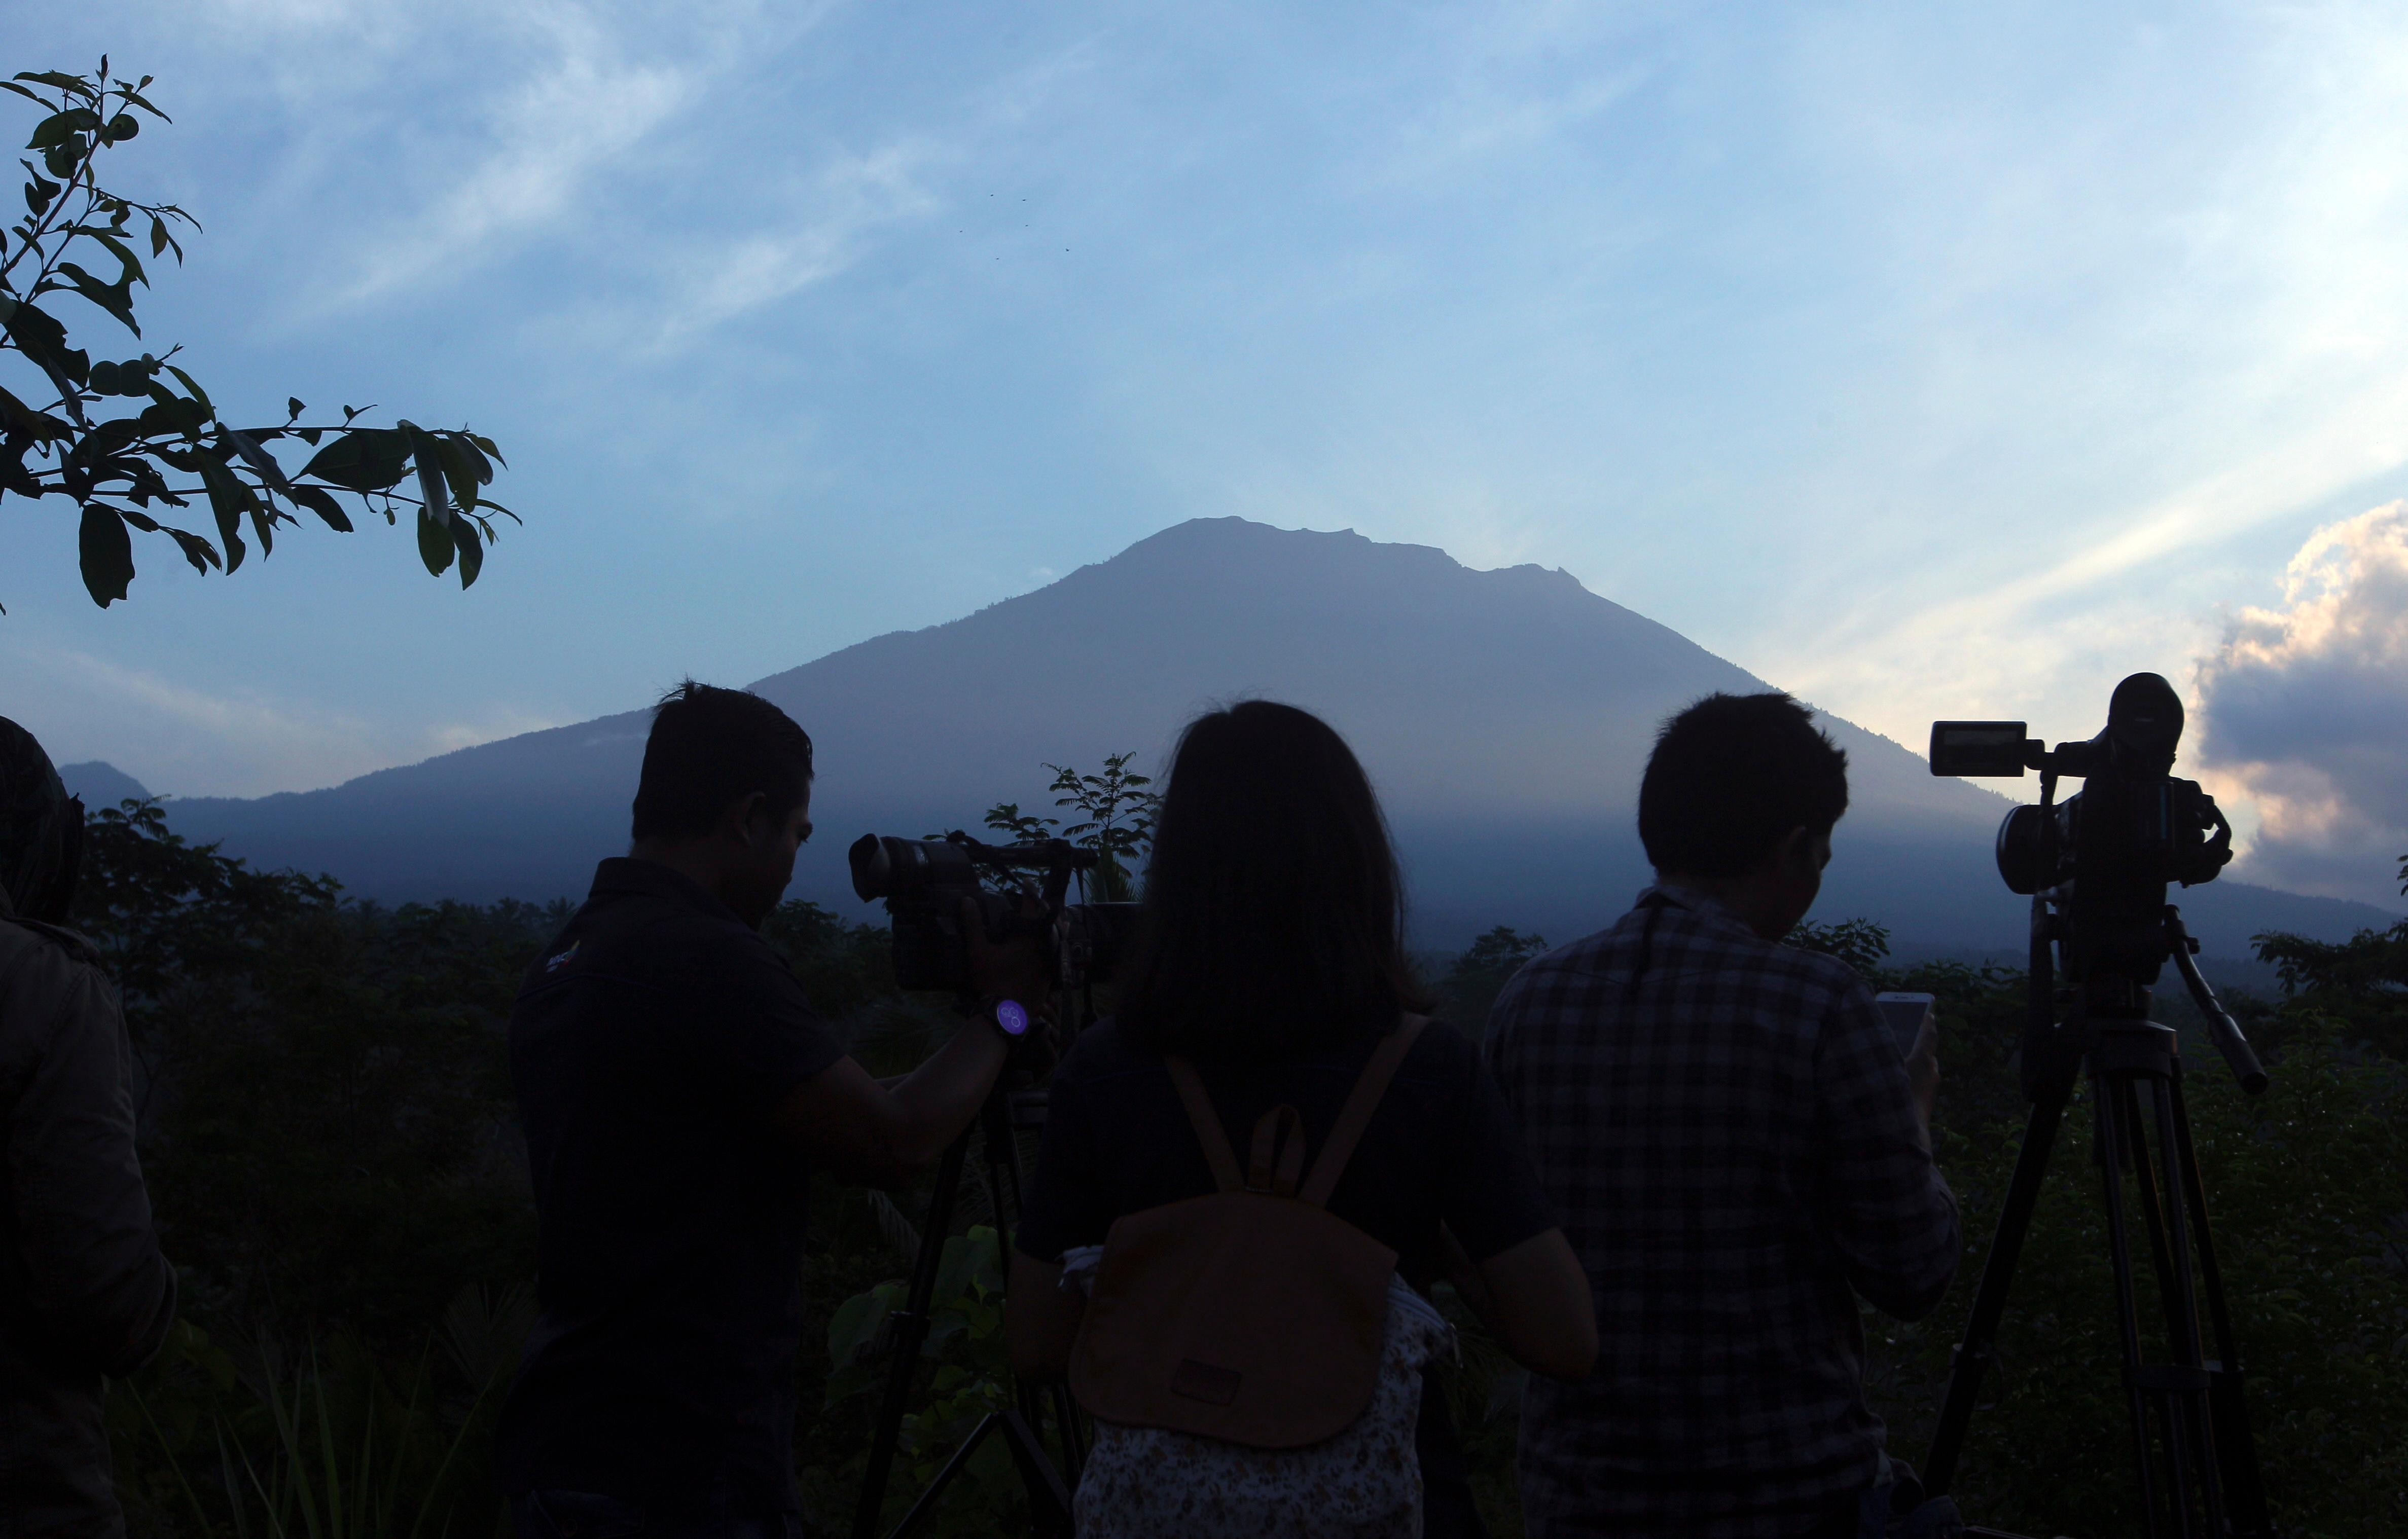 Journalists watch Mount Agung from an observation point which is about 12 kilometer (7.4 miles) away from the volcano in Karangasem, Bali, Indonesia, Thursday, Sept. 28, 2017. The exodus from the menacing volcano on the Indonesian tourist island is nearing 100,000 people, a disaster official said Wednesday, as hundreds of tremors from the mountain are recorded daily. (AP Photo/Firdia Lisnawati)